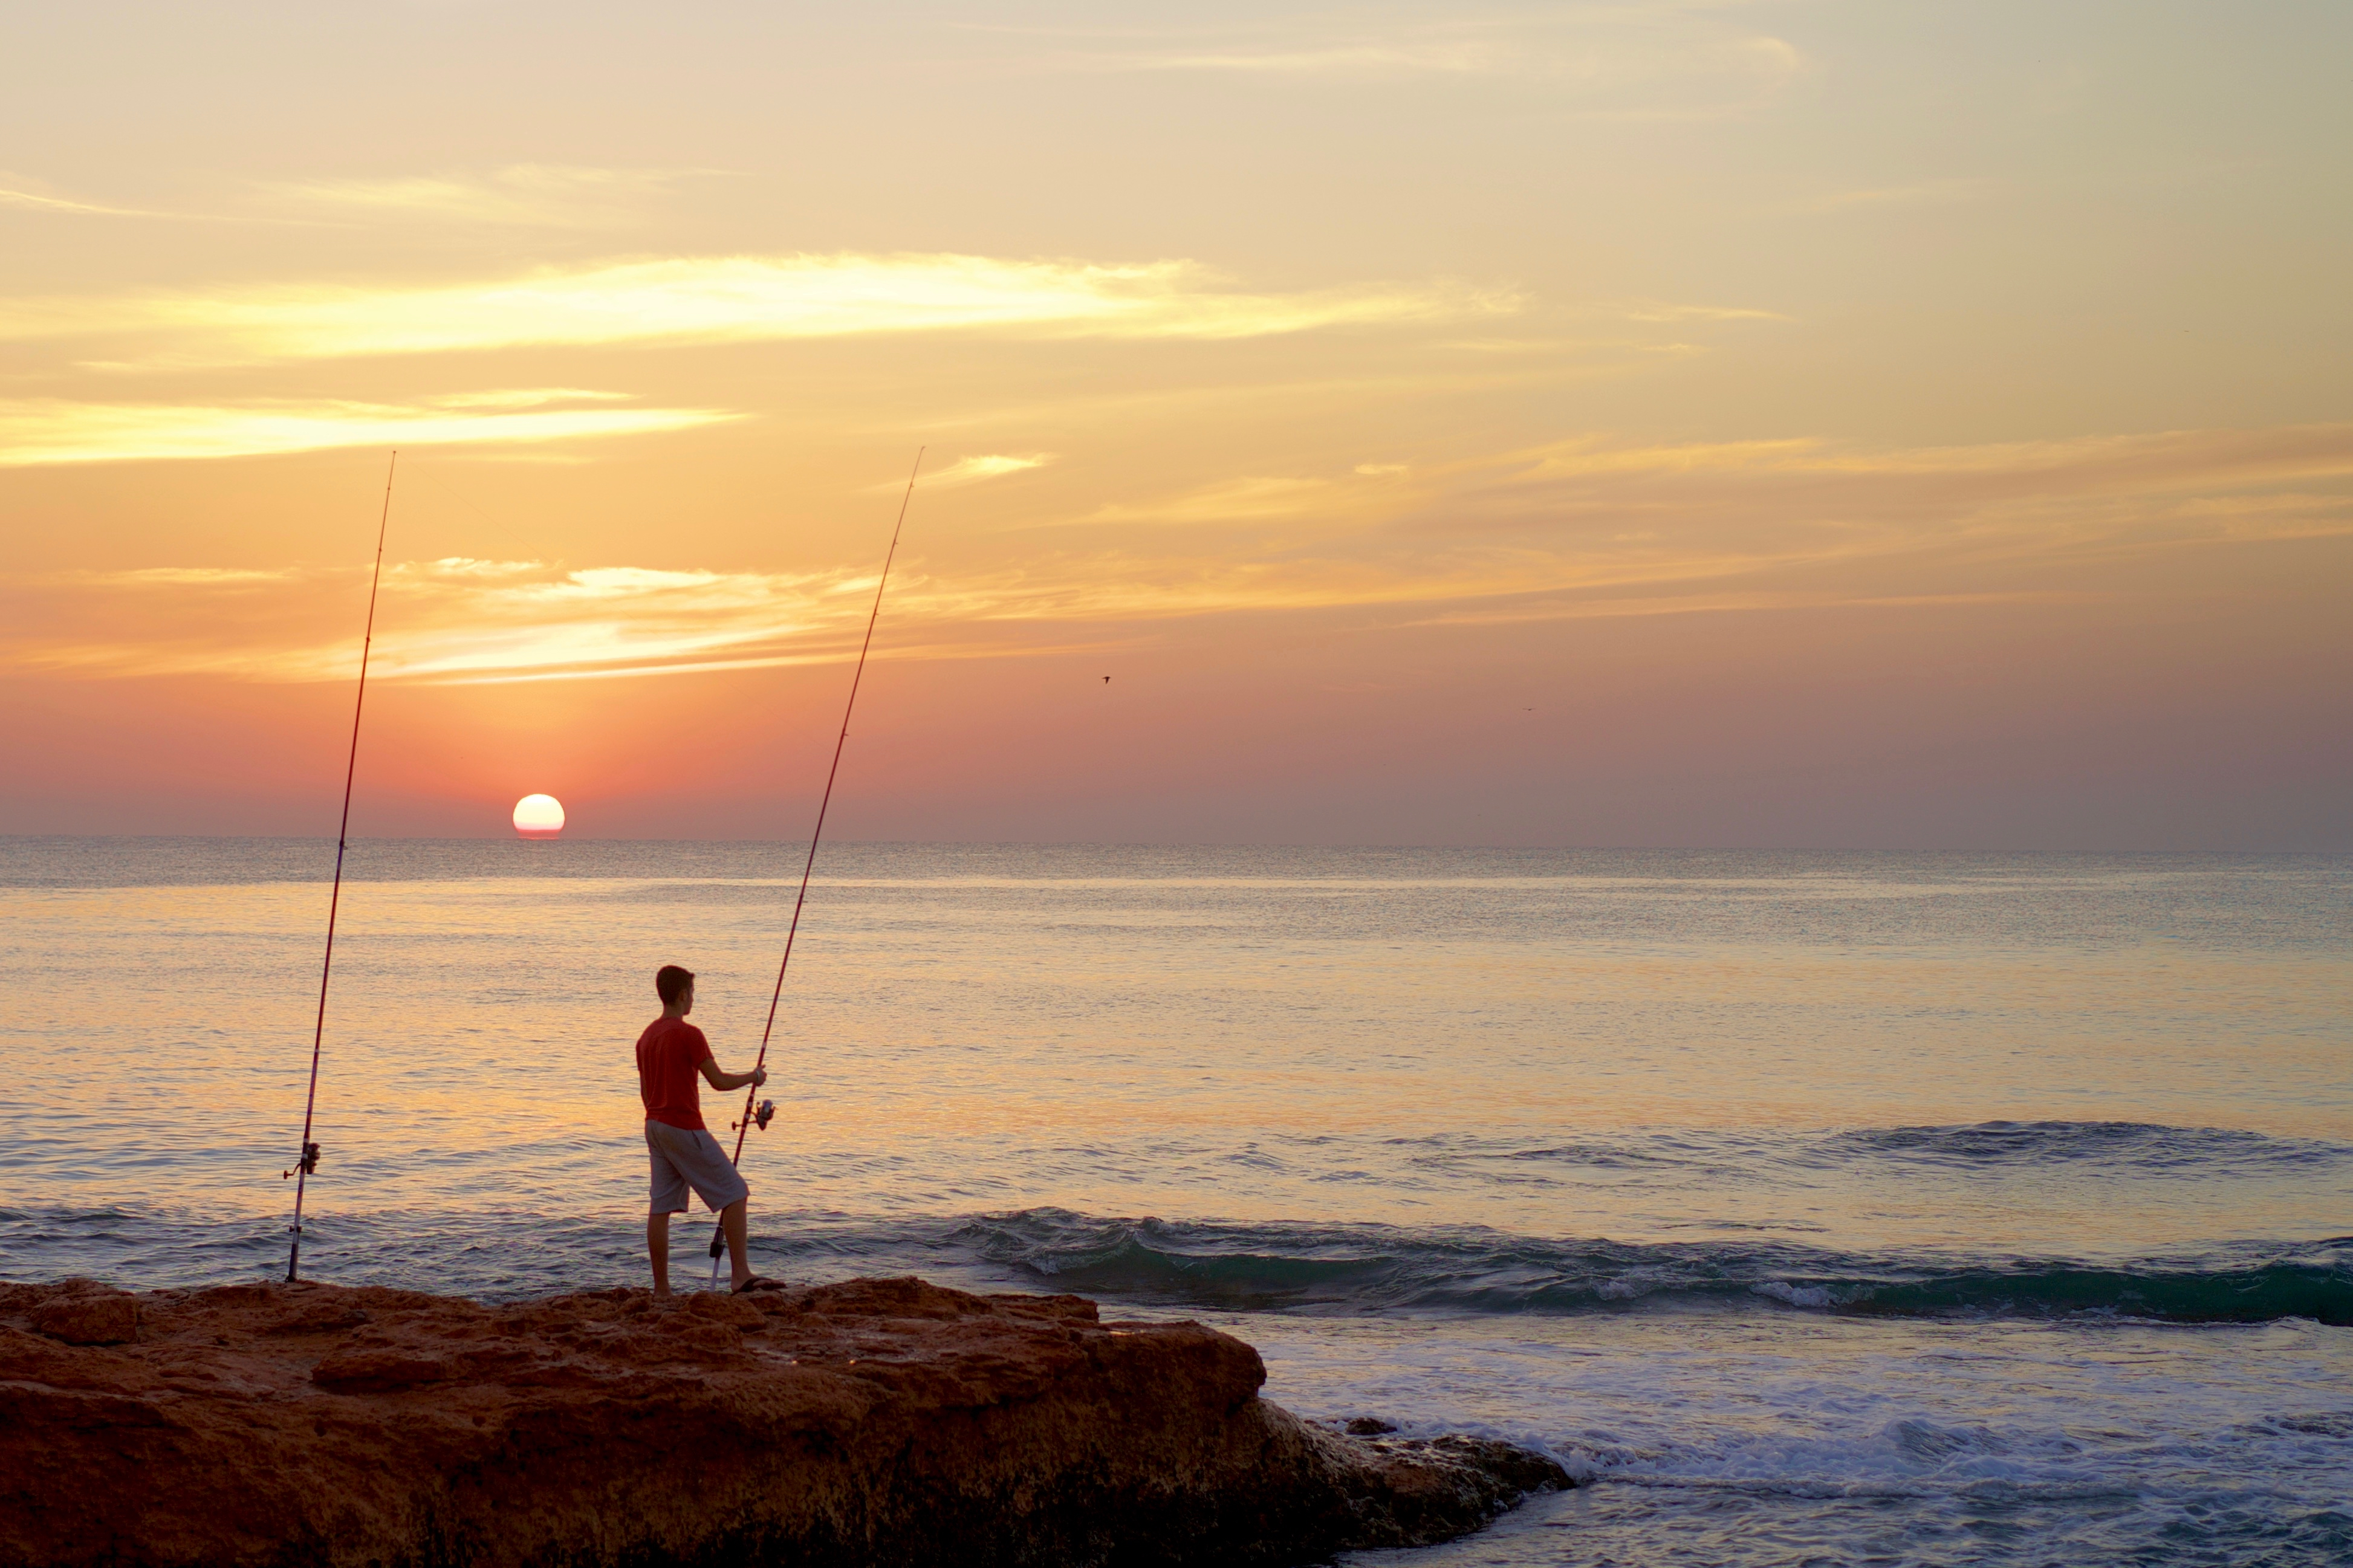 The fisherman and his rods are the focus of this sunrise shot.